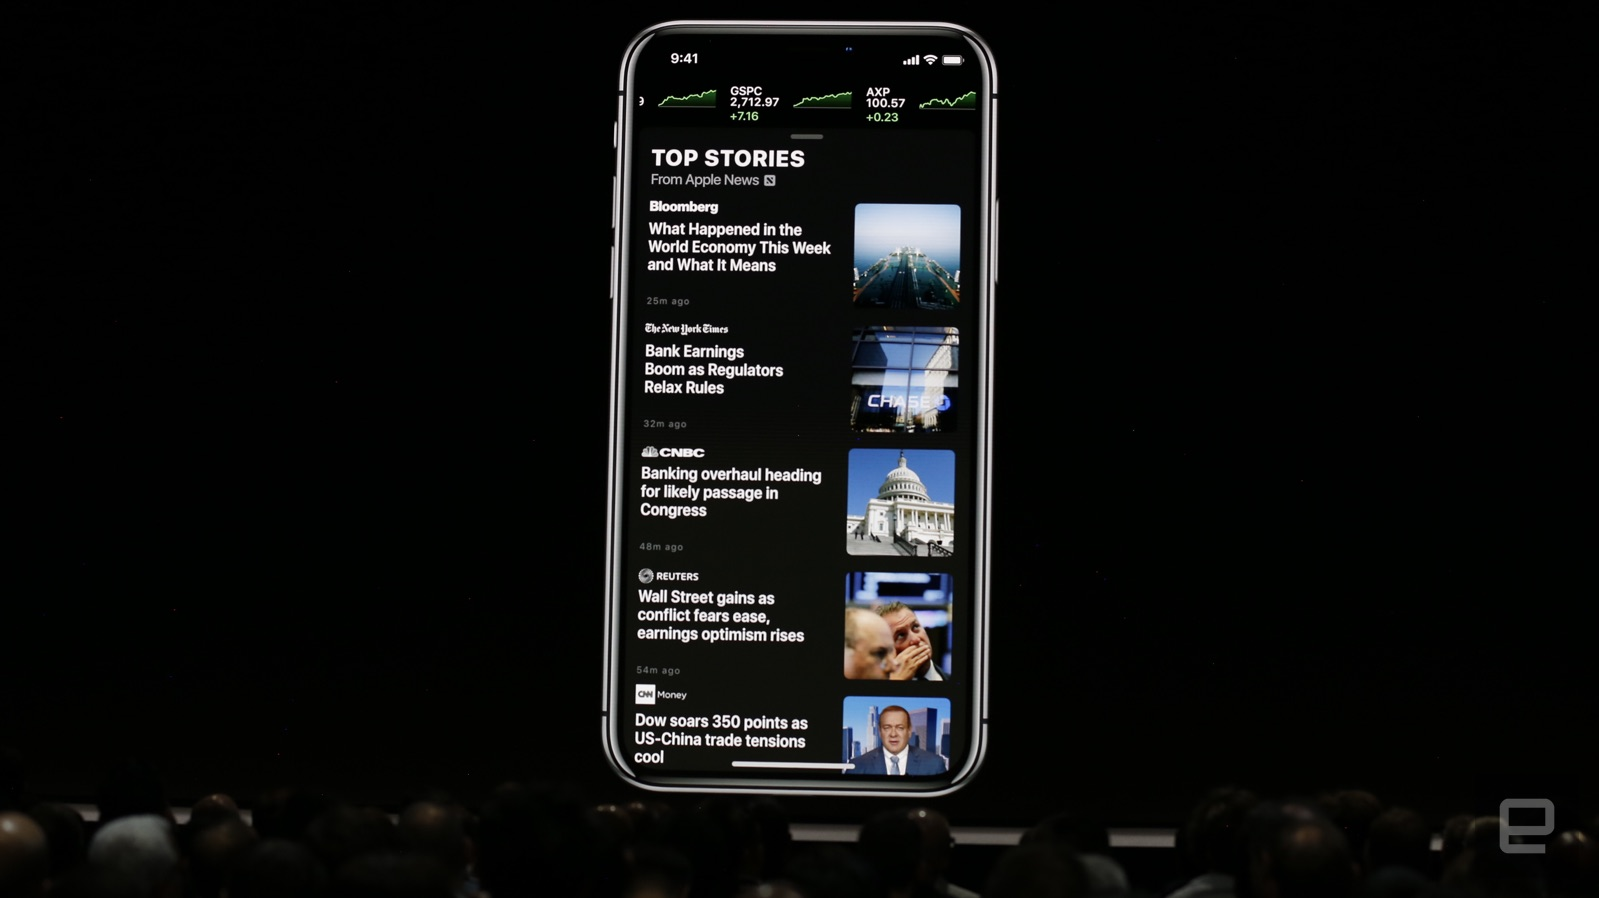 WWDC 18: iOS 12 Updates Native Apps Including Photos, News, Stocks, And More